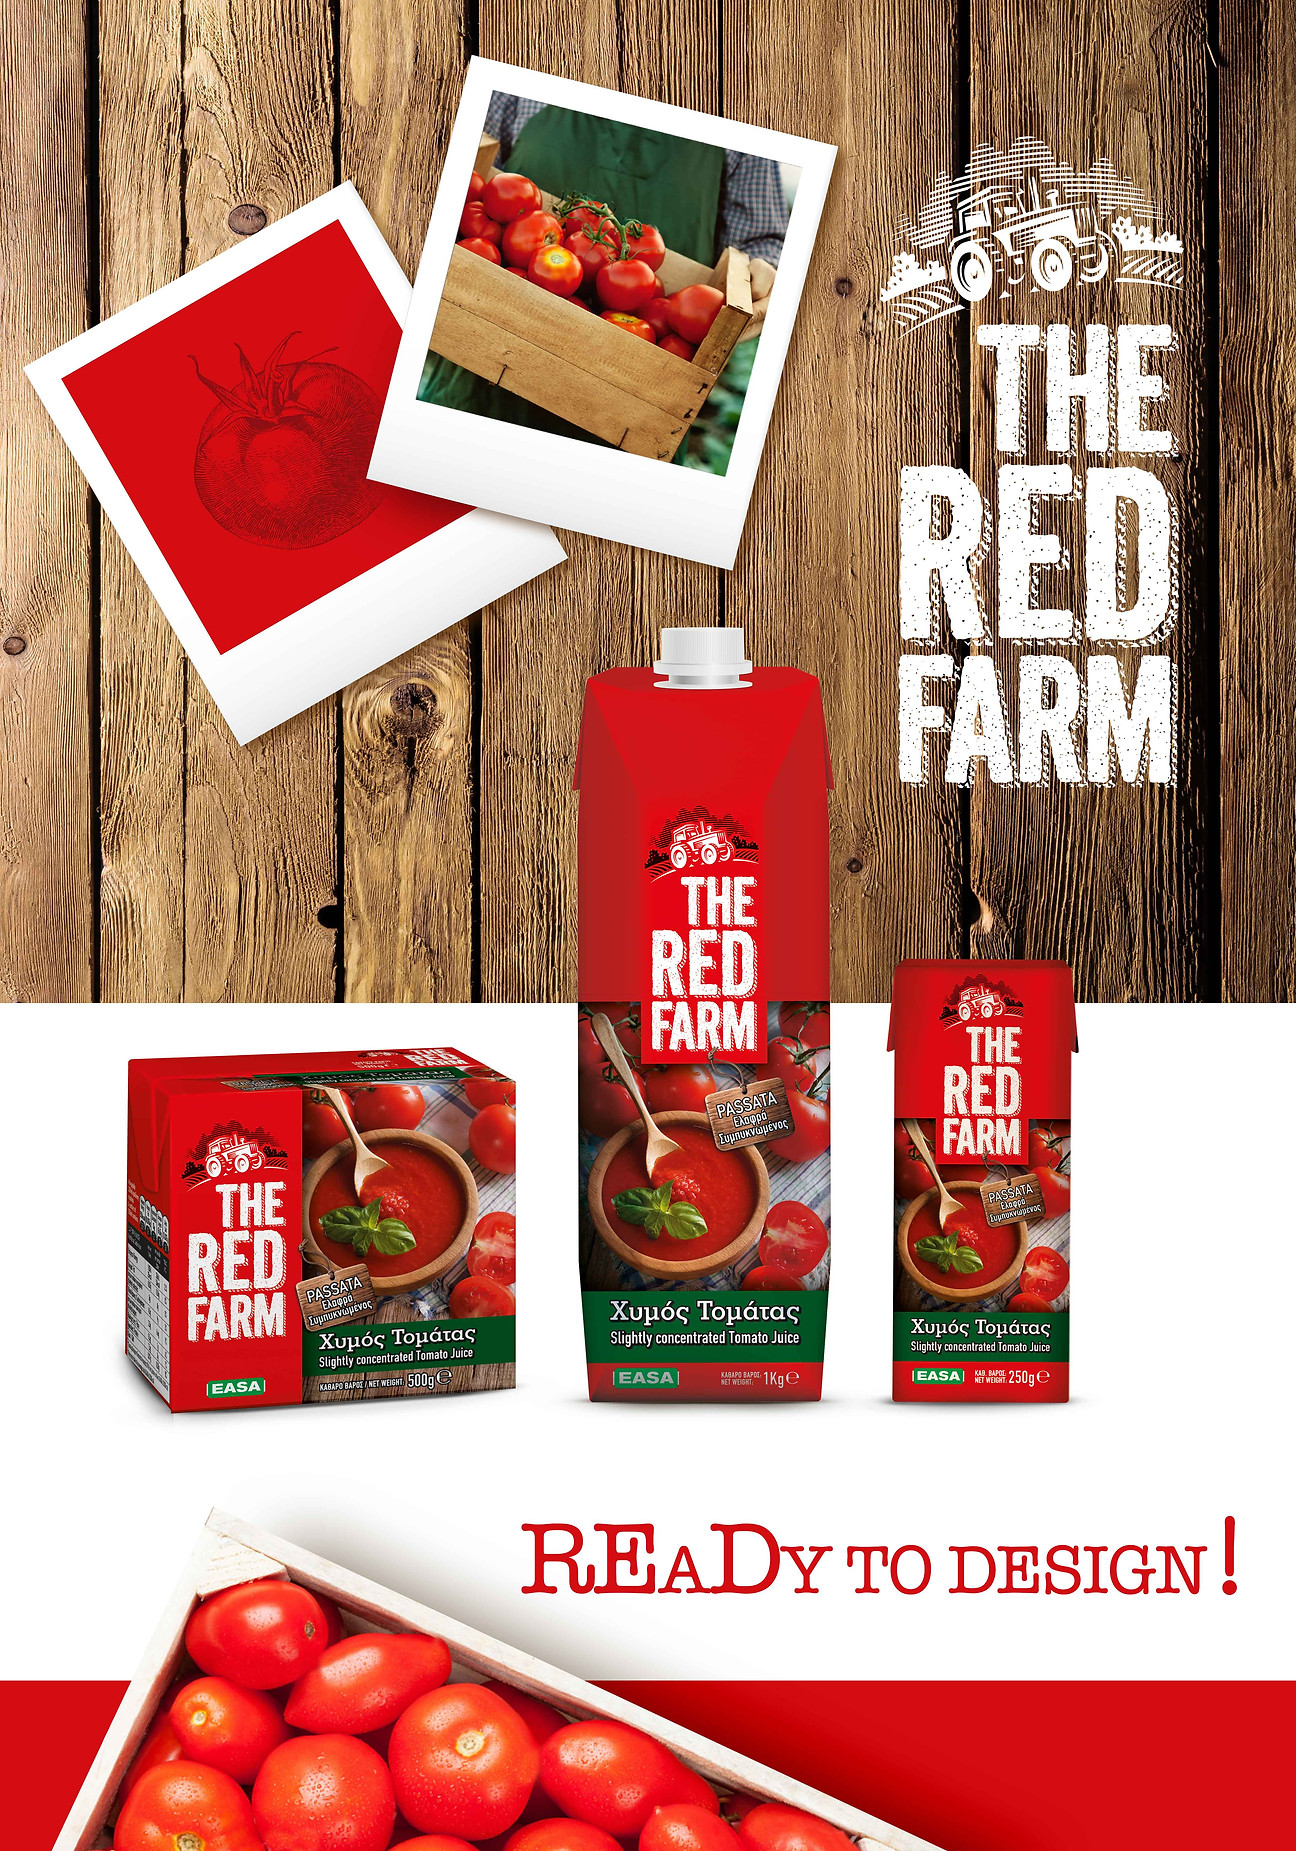 The Red Farm tomato juice